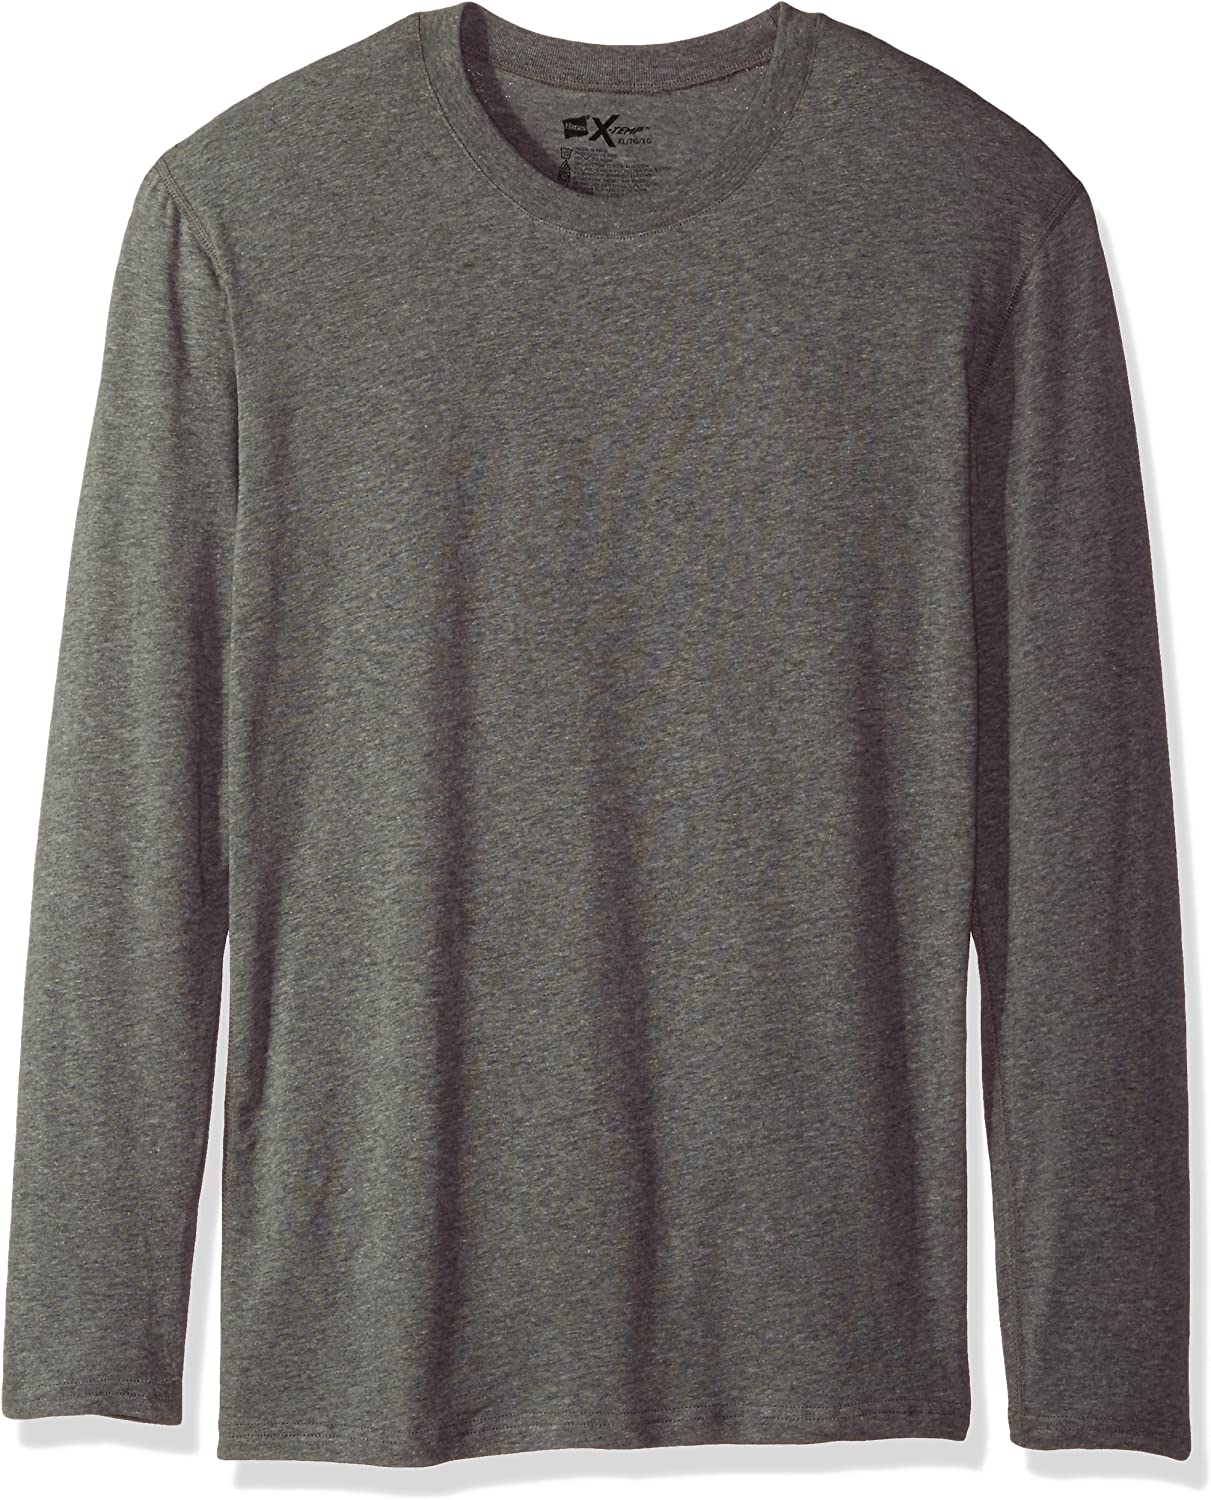 Hanes Mens Dyed Thermal Crew with Freshiq